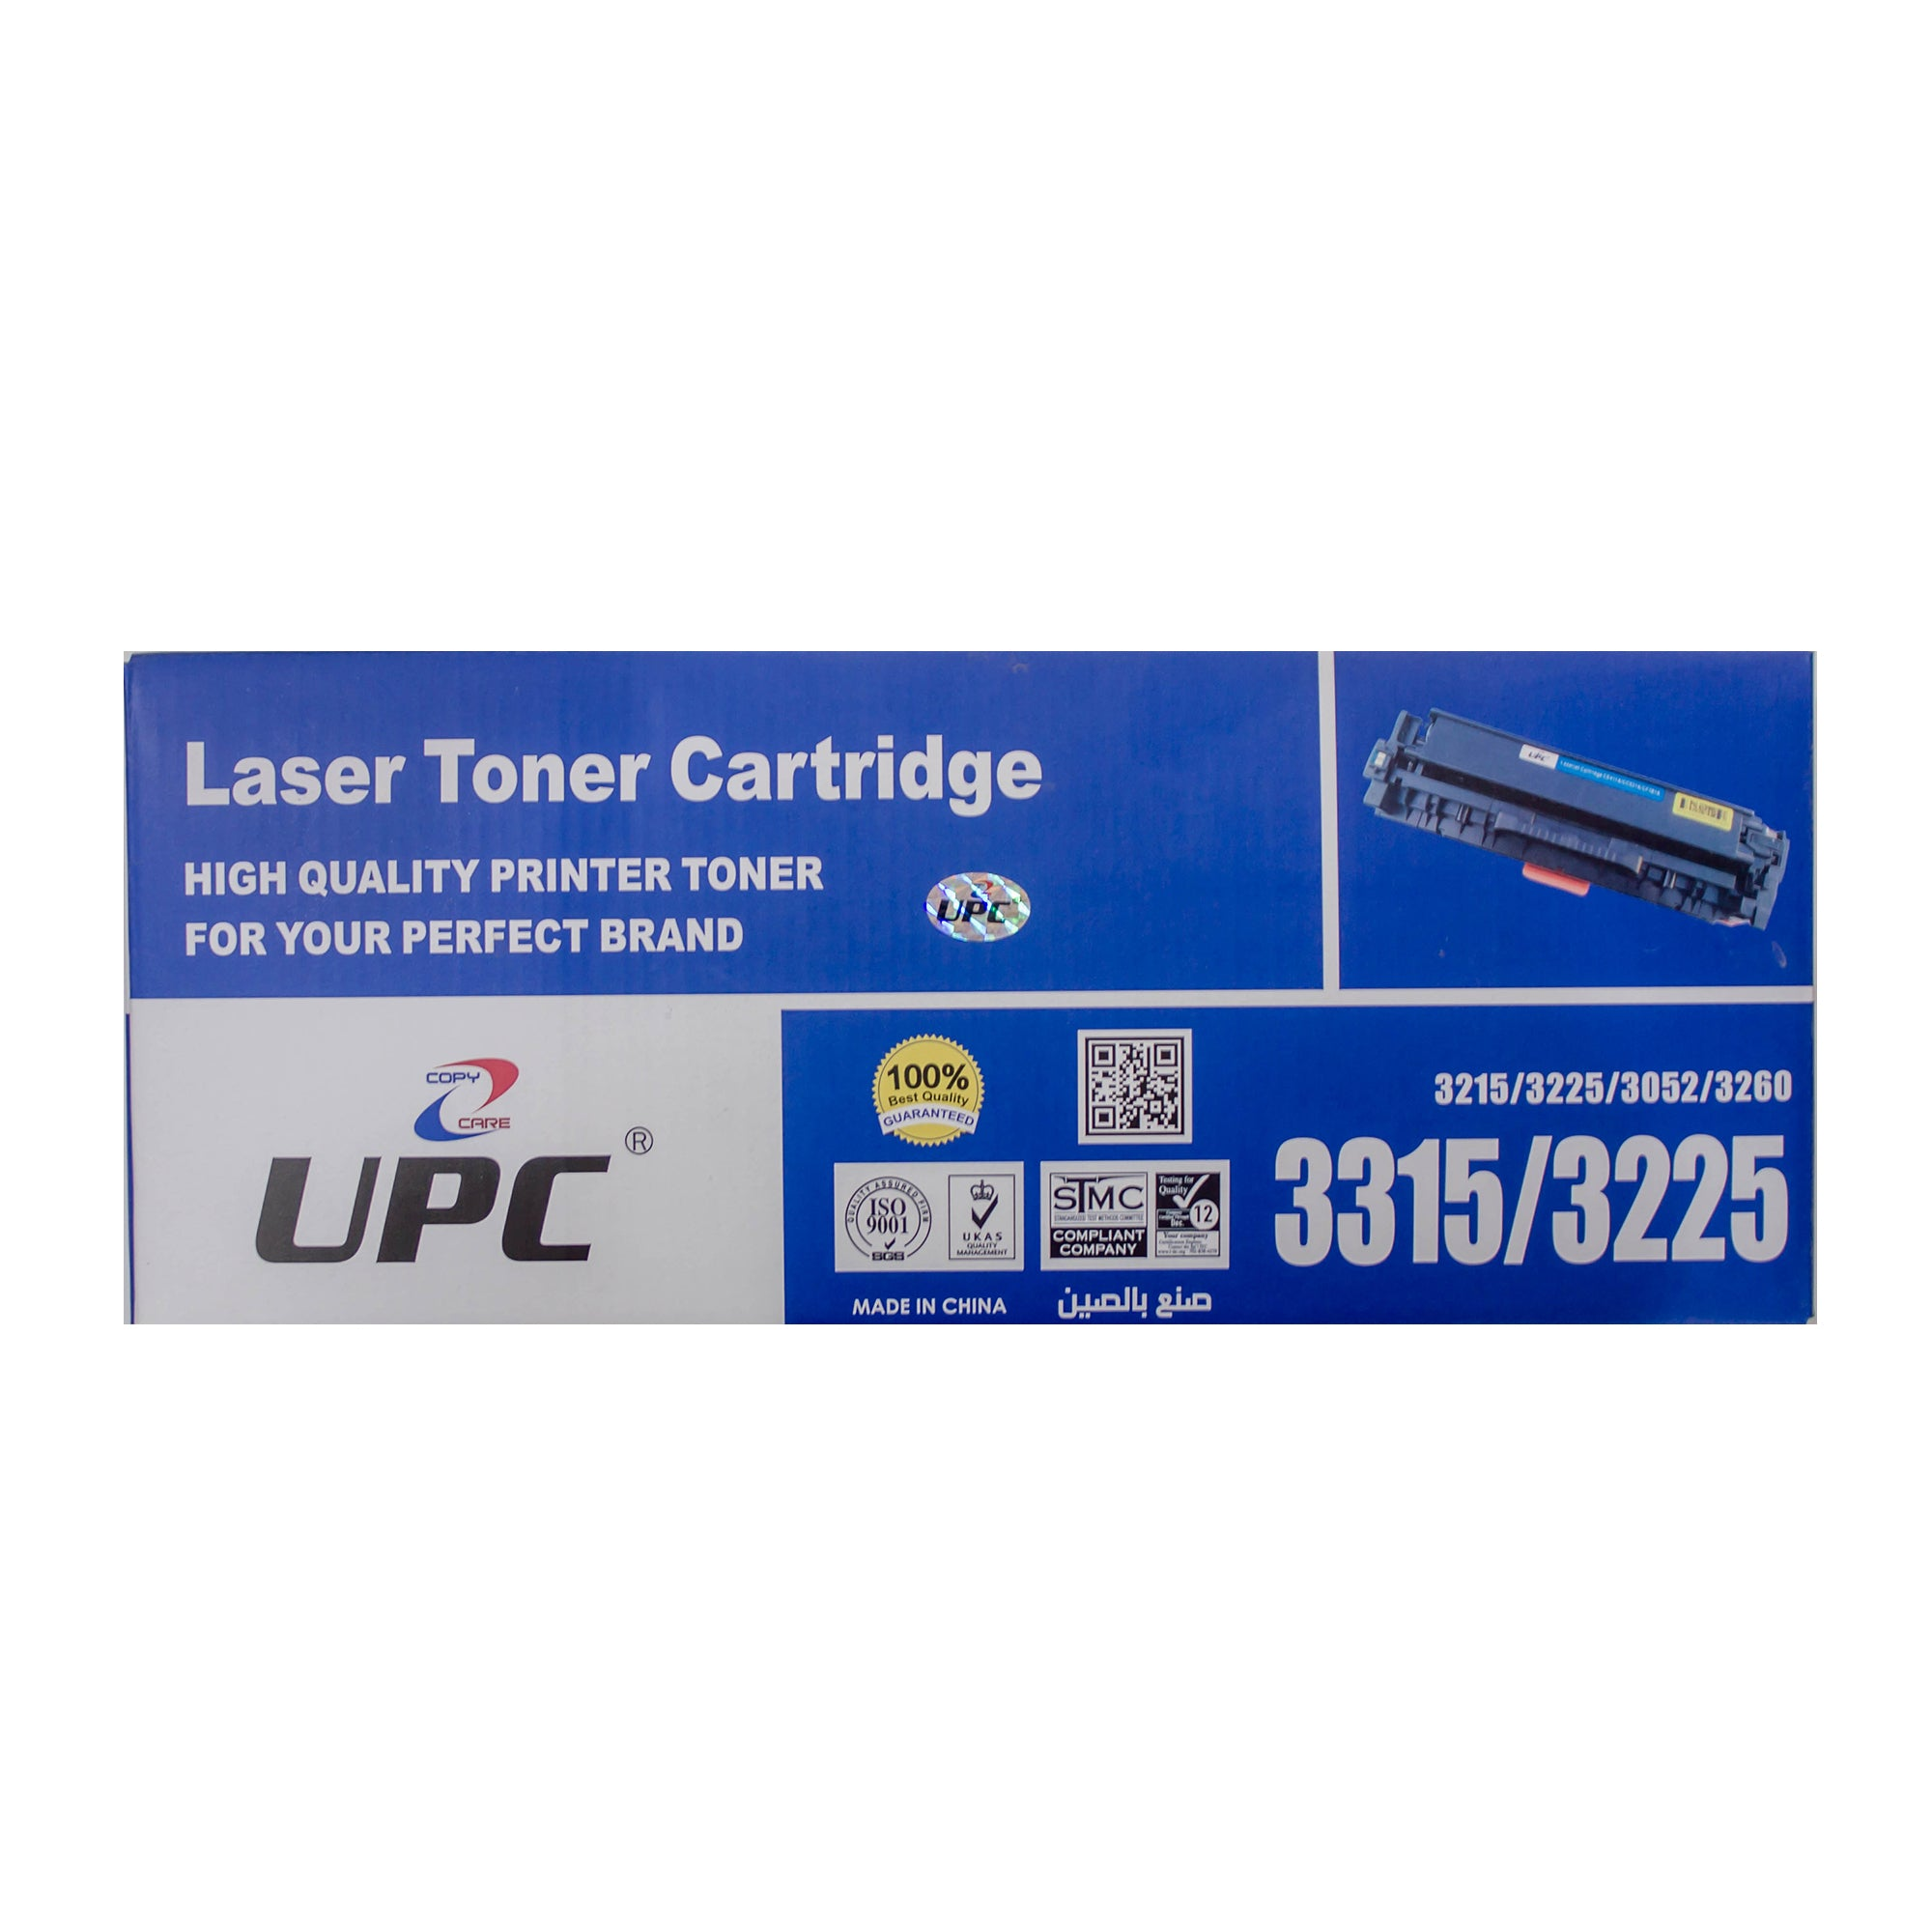 UPC 3315 l 3225 Compatible Toner Laser Black for Xerox Printers Phaser 3215 l Work Centre 3225